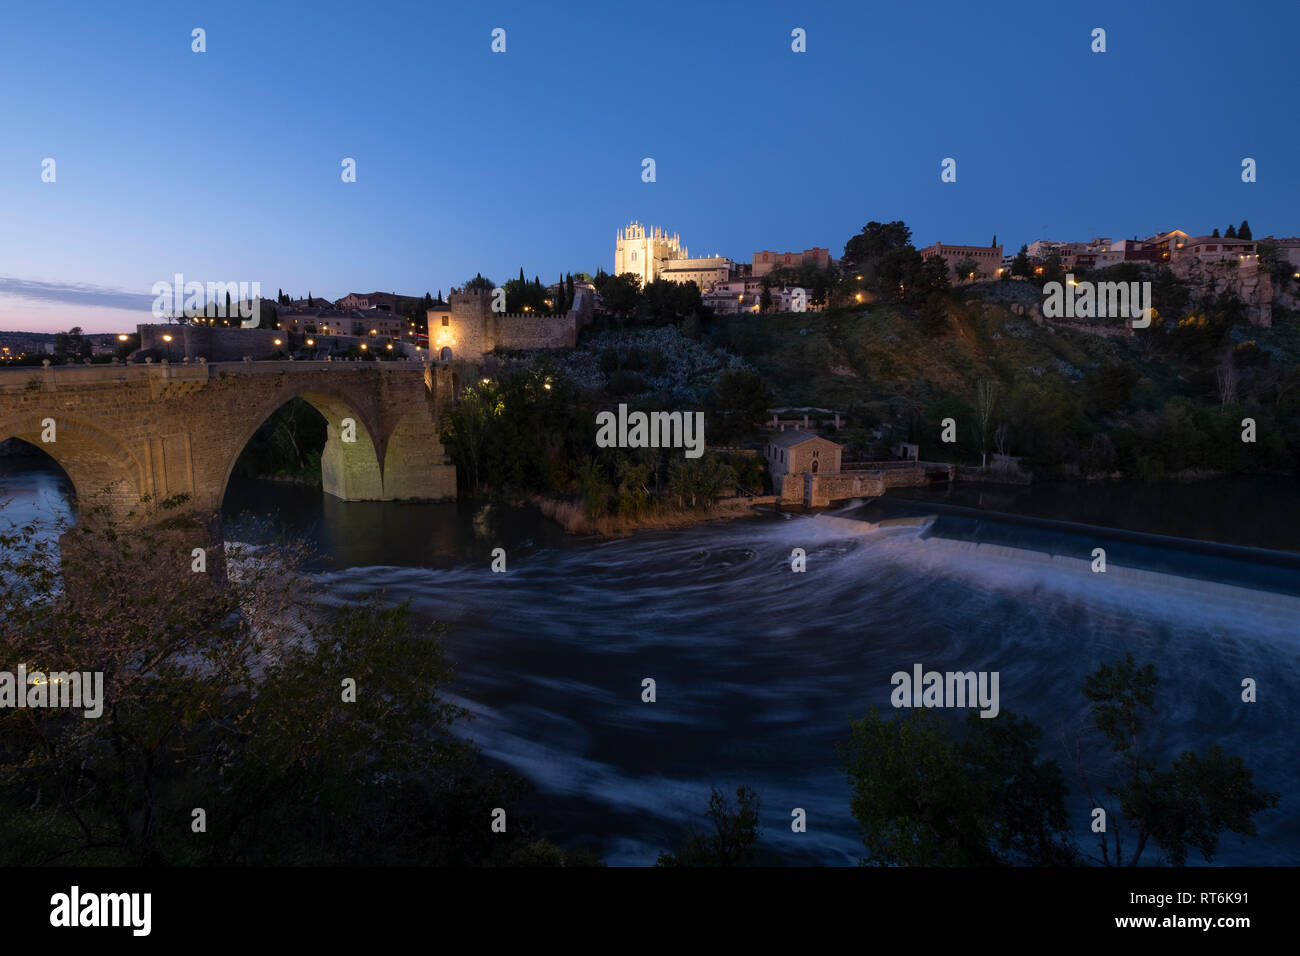 Puente de San Martin, bridge over river Tajo, Toledo,Castilla la Mancha, Spain Stock Photo